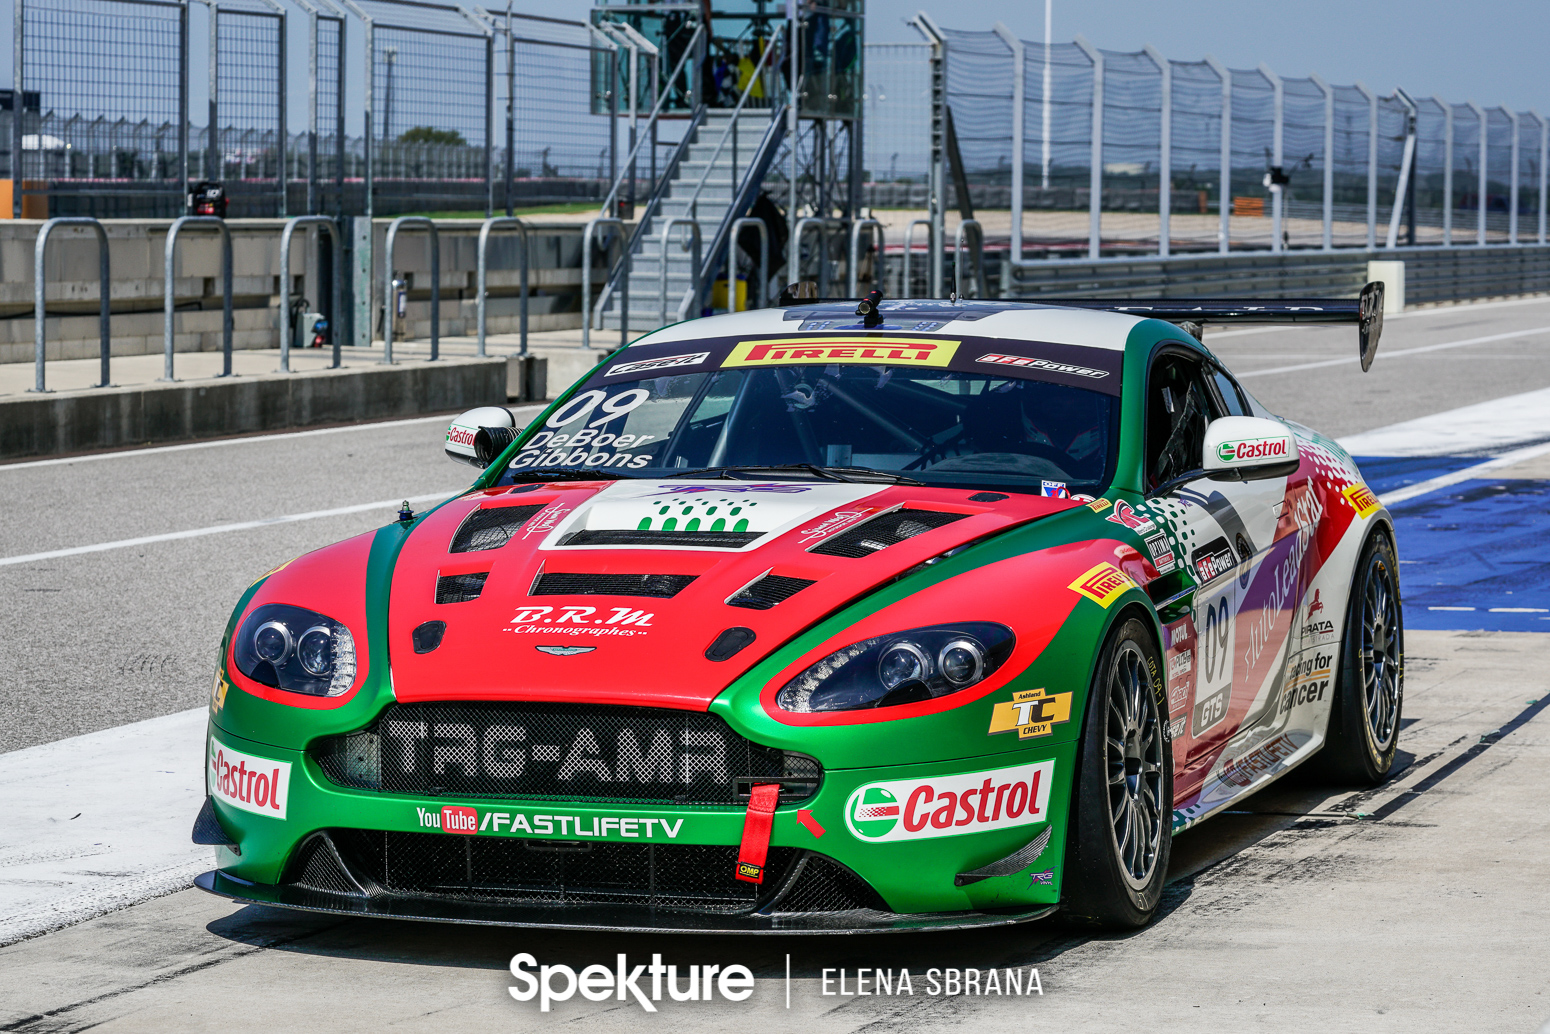 Earchphoto - The TRG-AMR Aston Martin of Derek De Boer and Sean Gibbons at COTA in 2017.